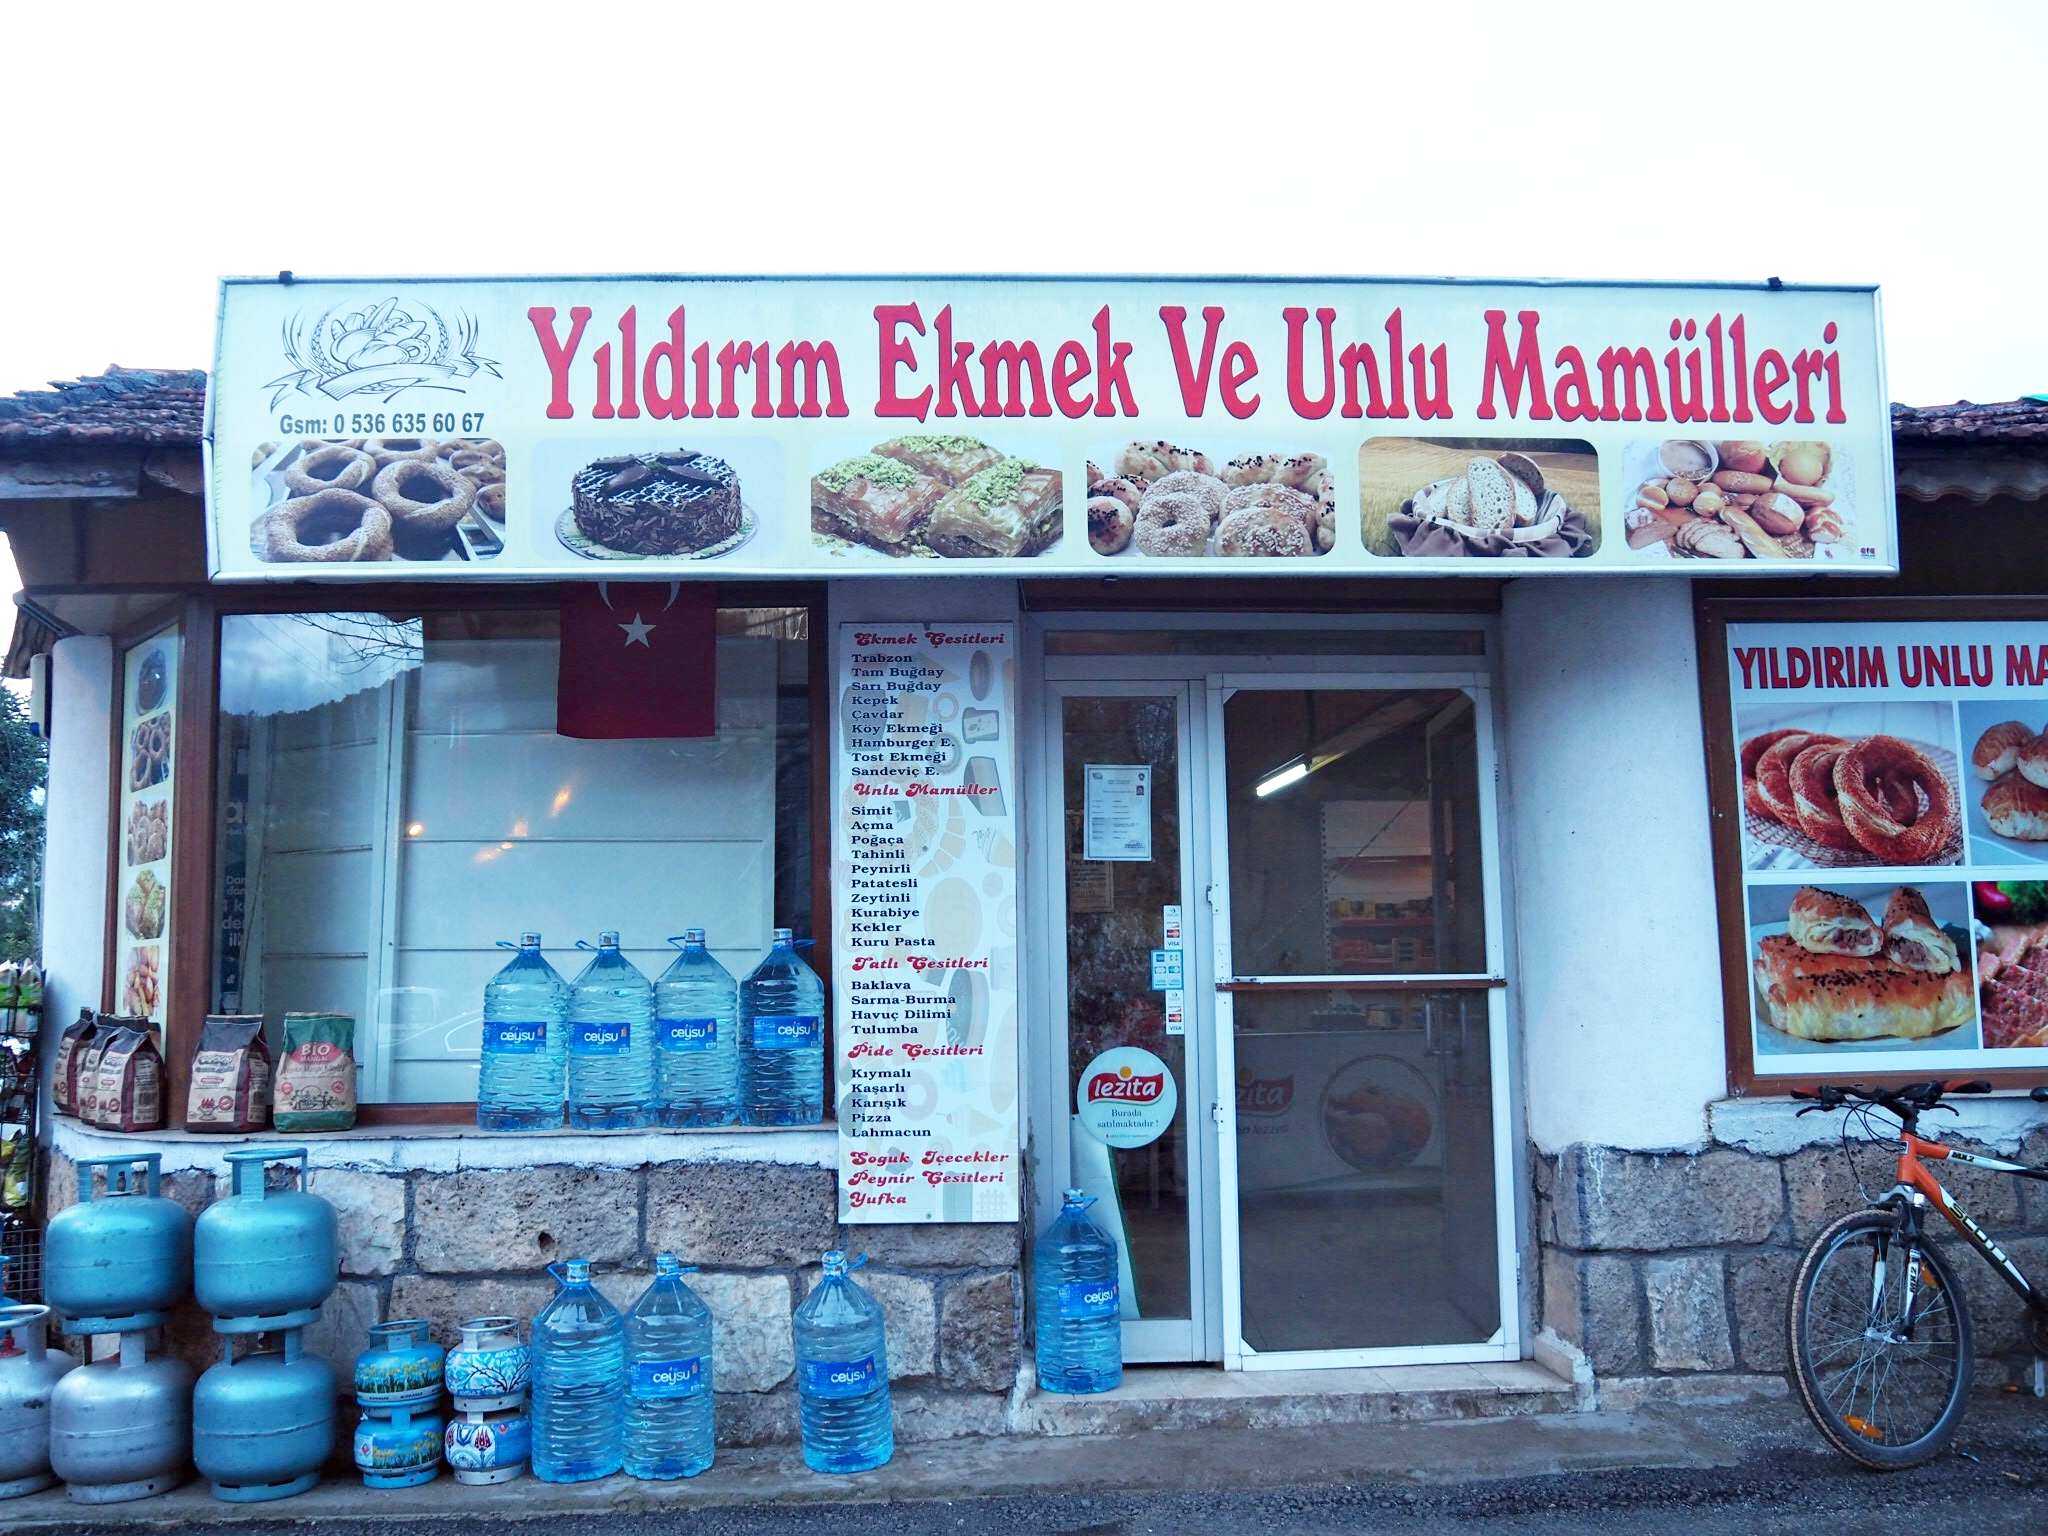 Maybe it was pure laziness just to call this place the 'ekmek' but the actual name was so much longer…